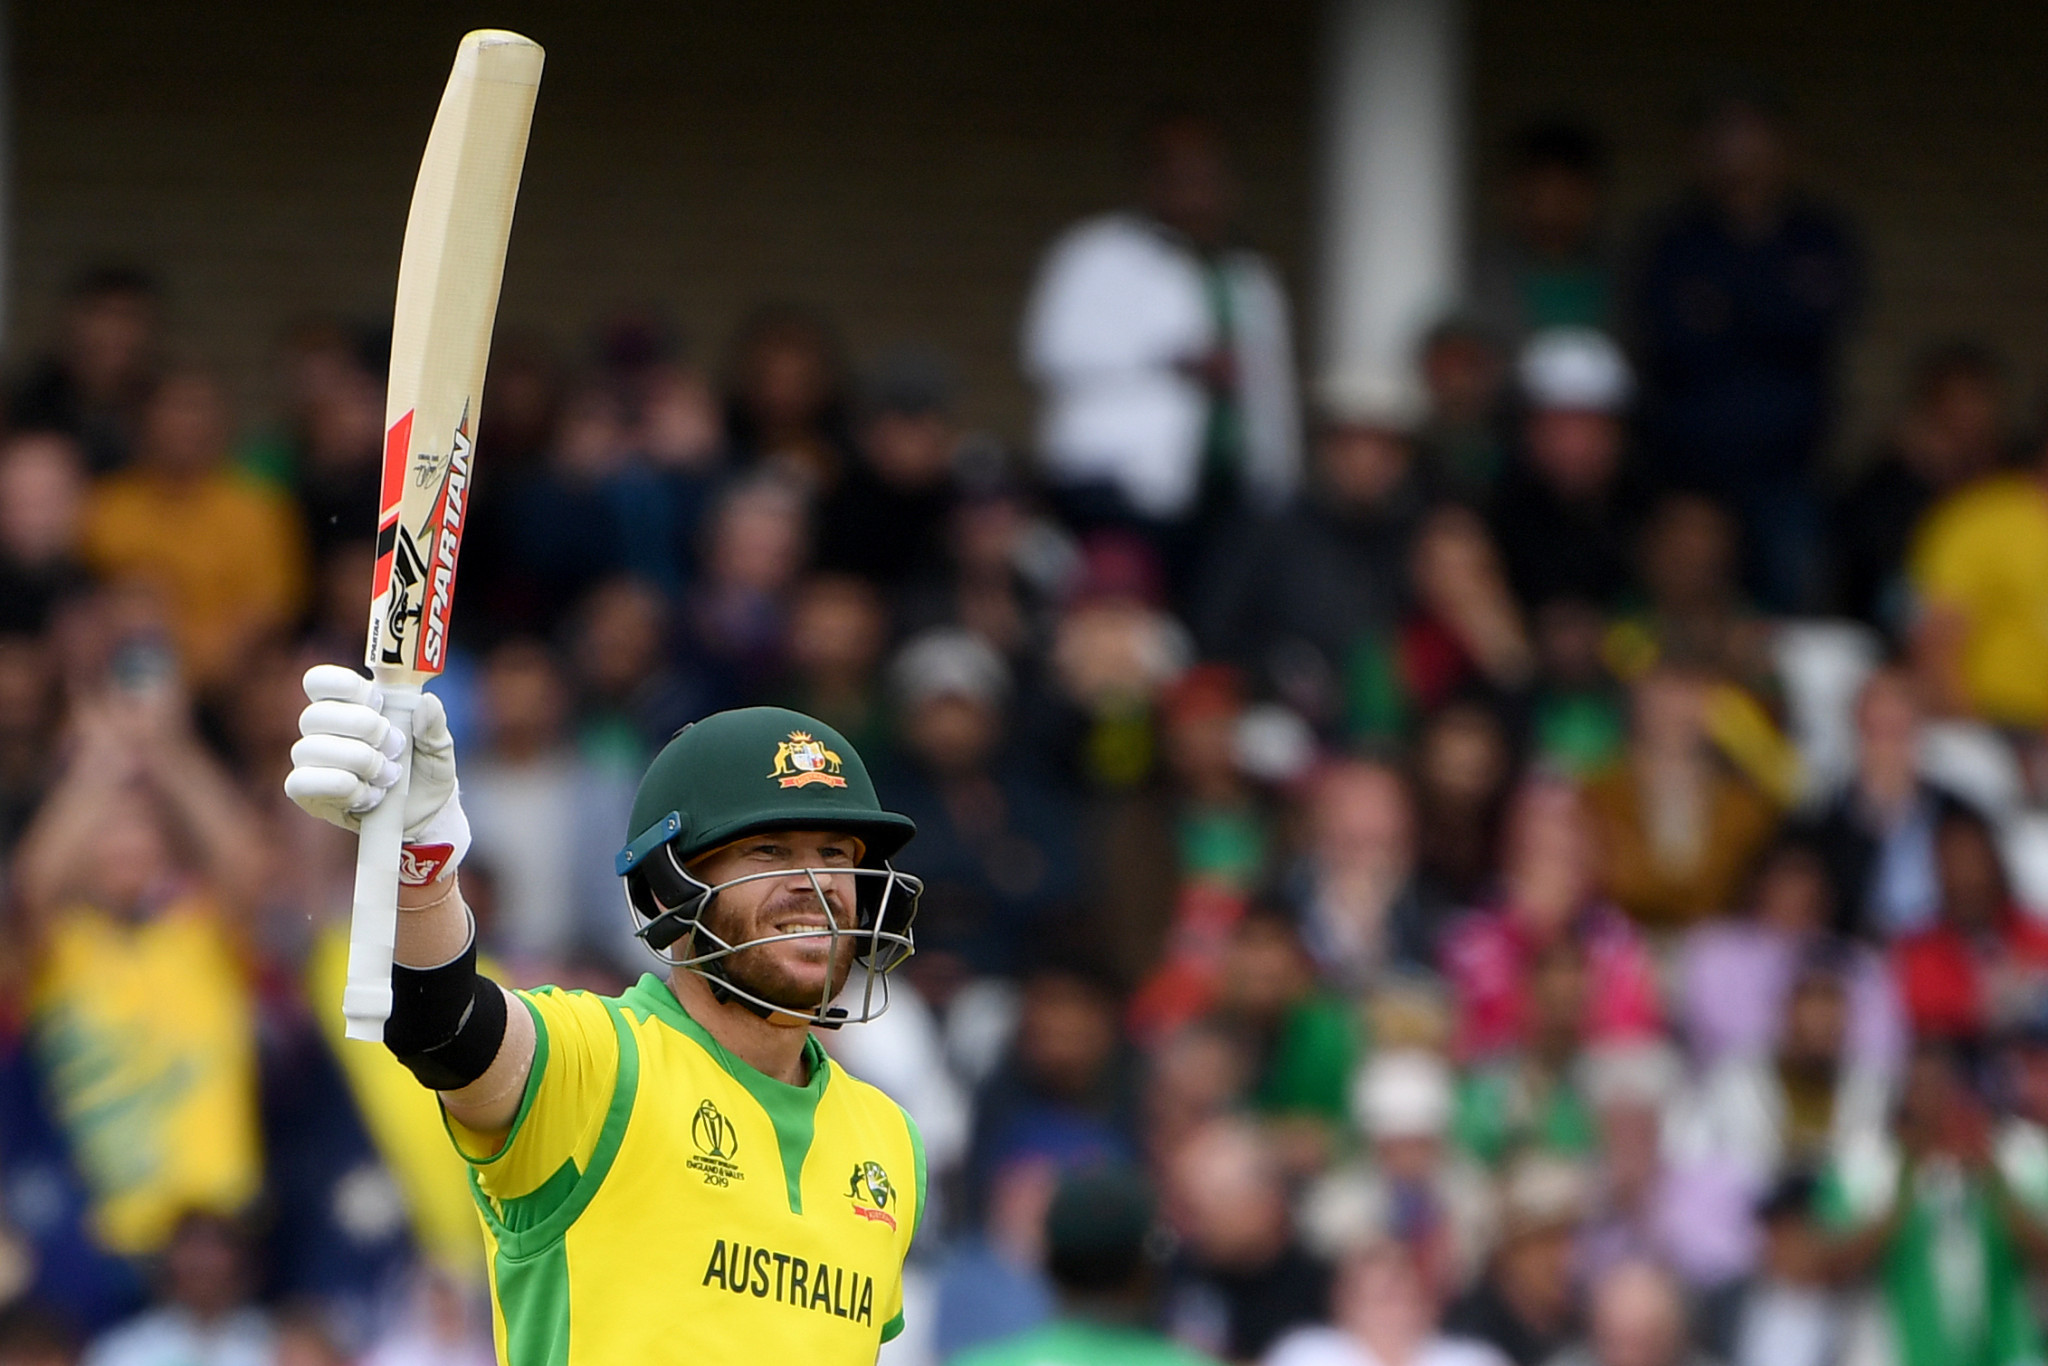 David Warner's innings of 166 helped Australia to a 48-run win over Bangladesh at the ICC Men's World Cup today ©Getty Images